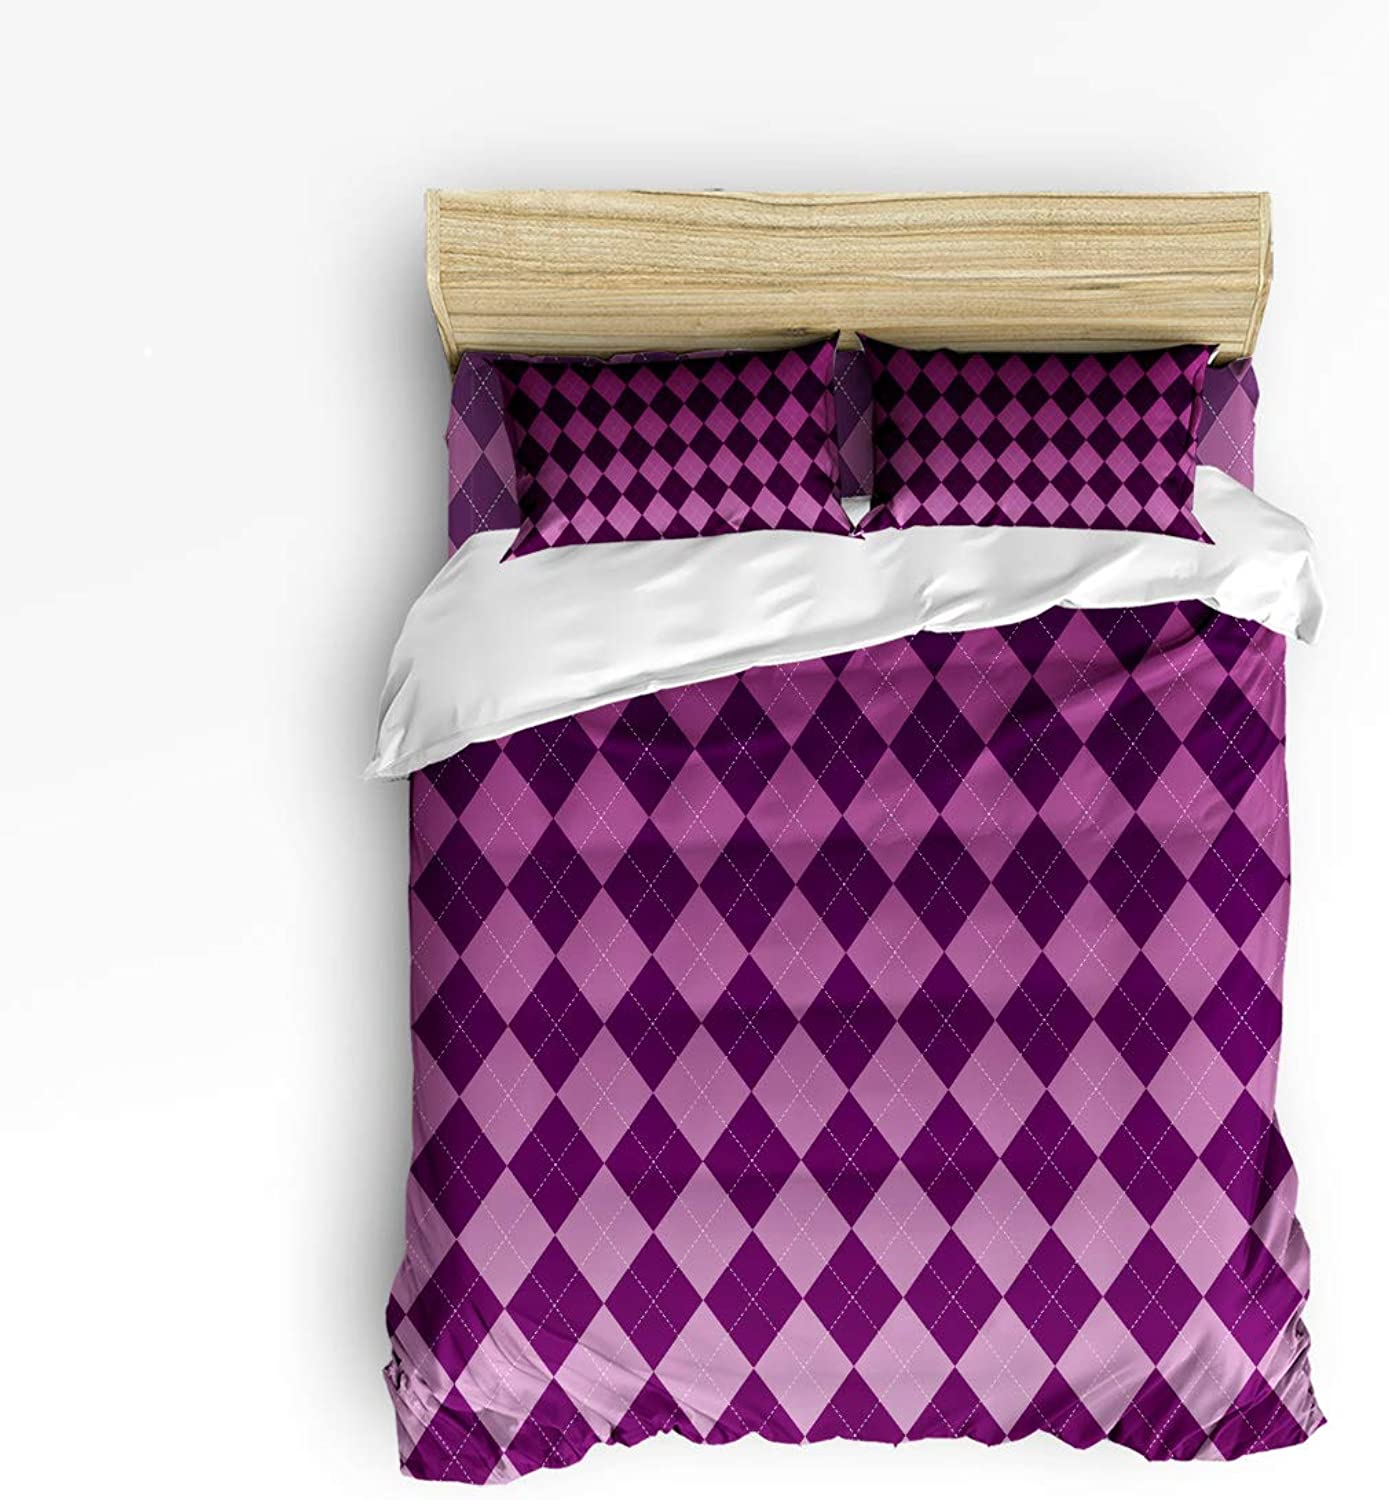 Classic Purple Gradation Grid Queen Size 4 Piece Bedding Set, Ultra Soft Microfiber Lightweight Microfiber Duvet